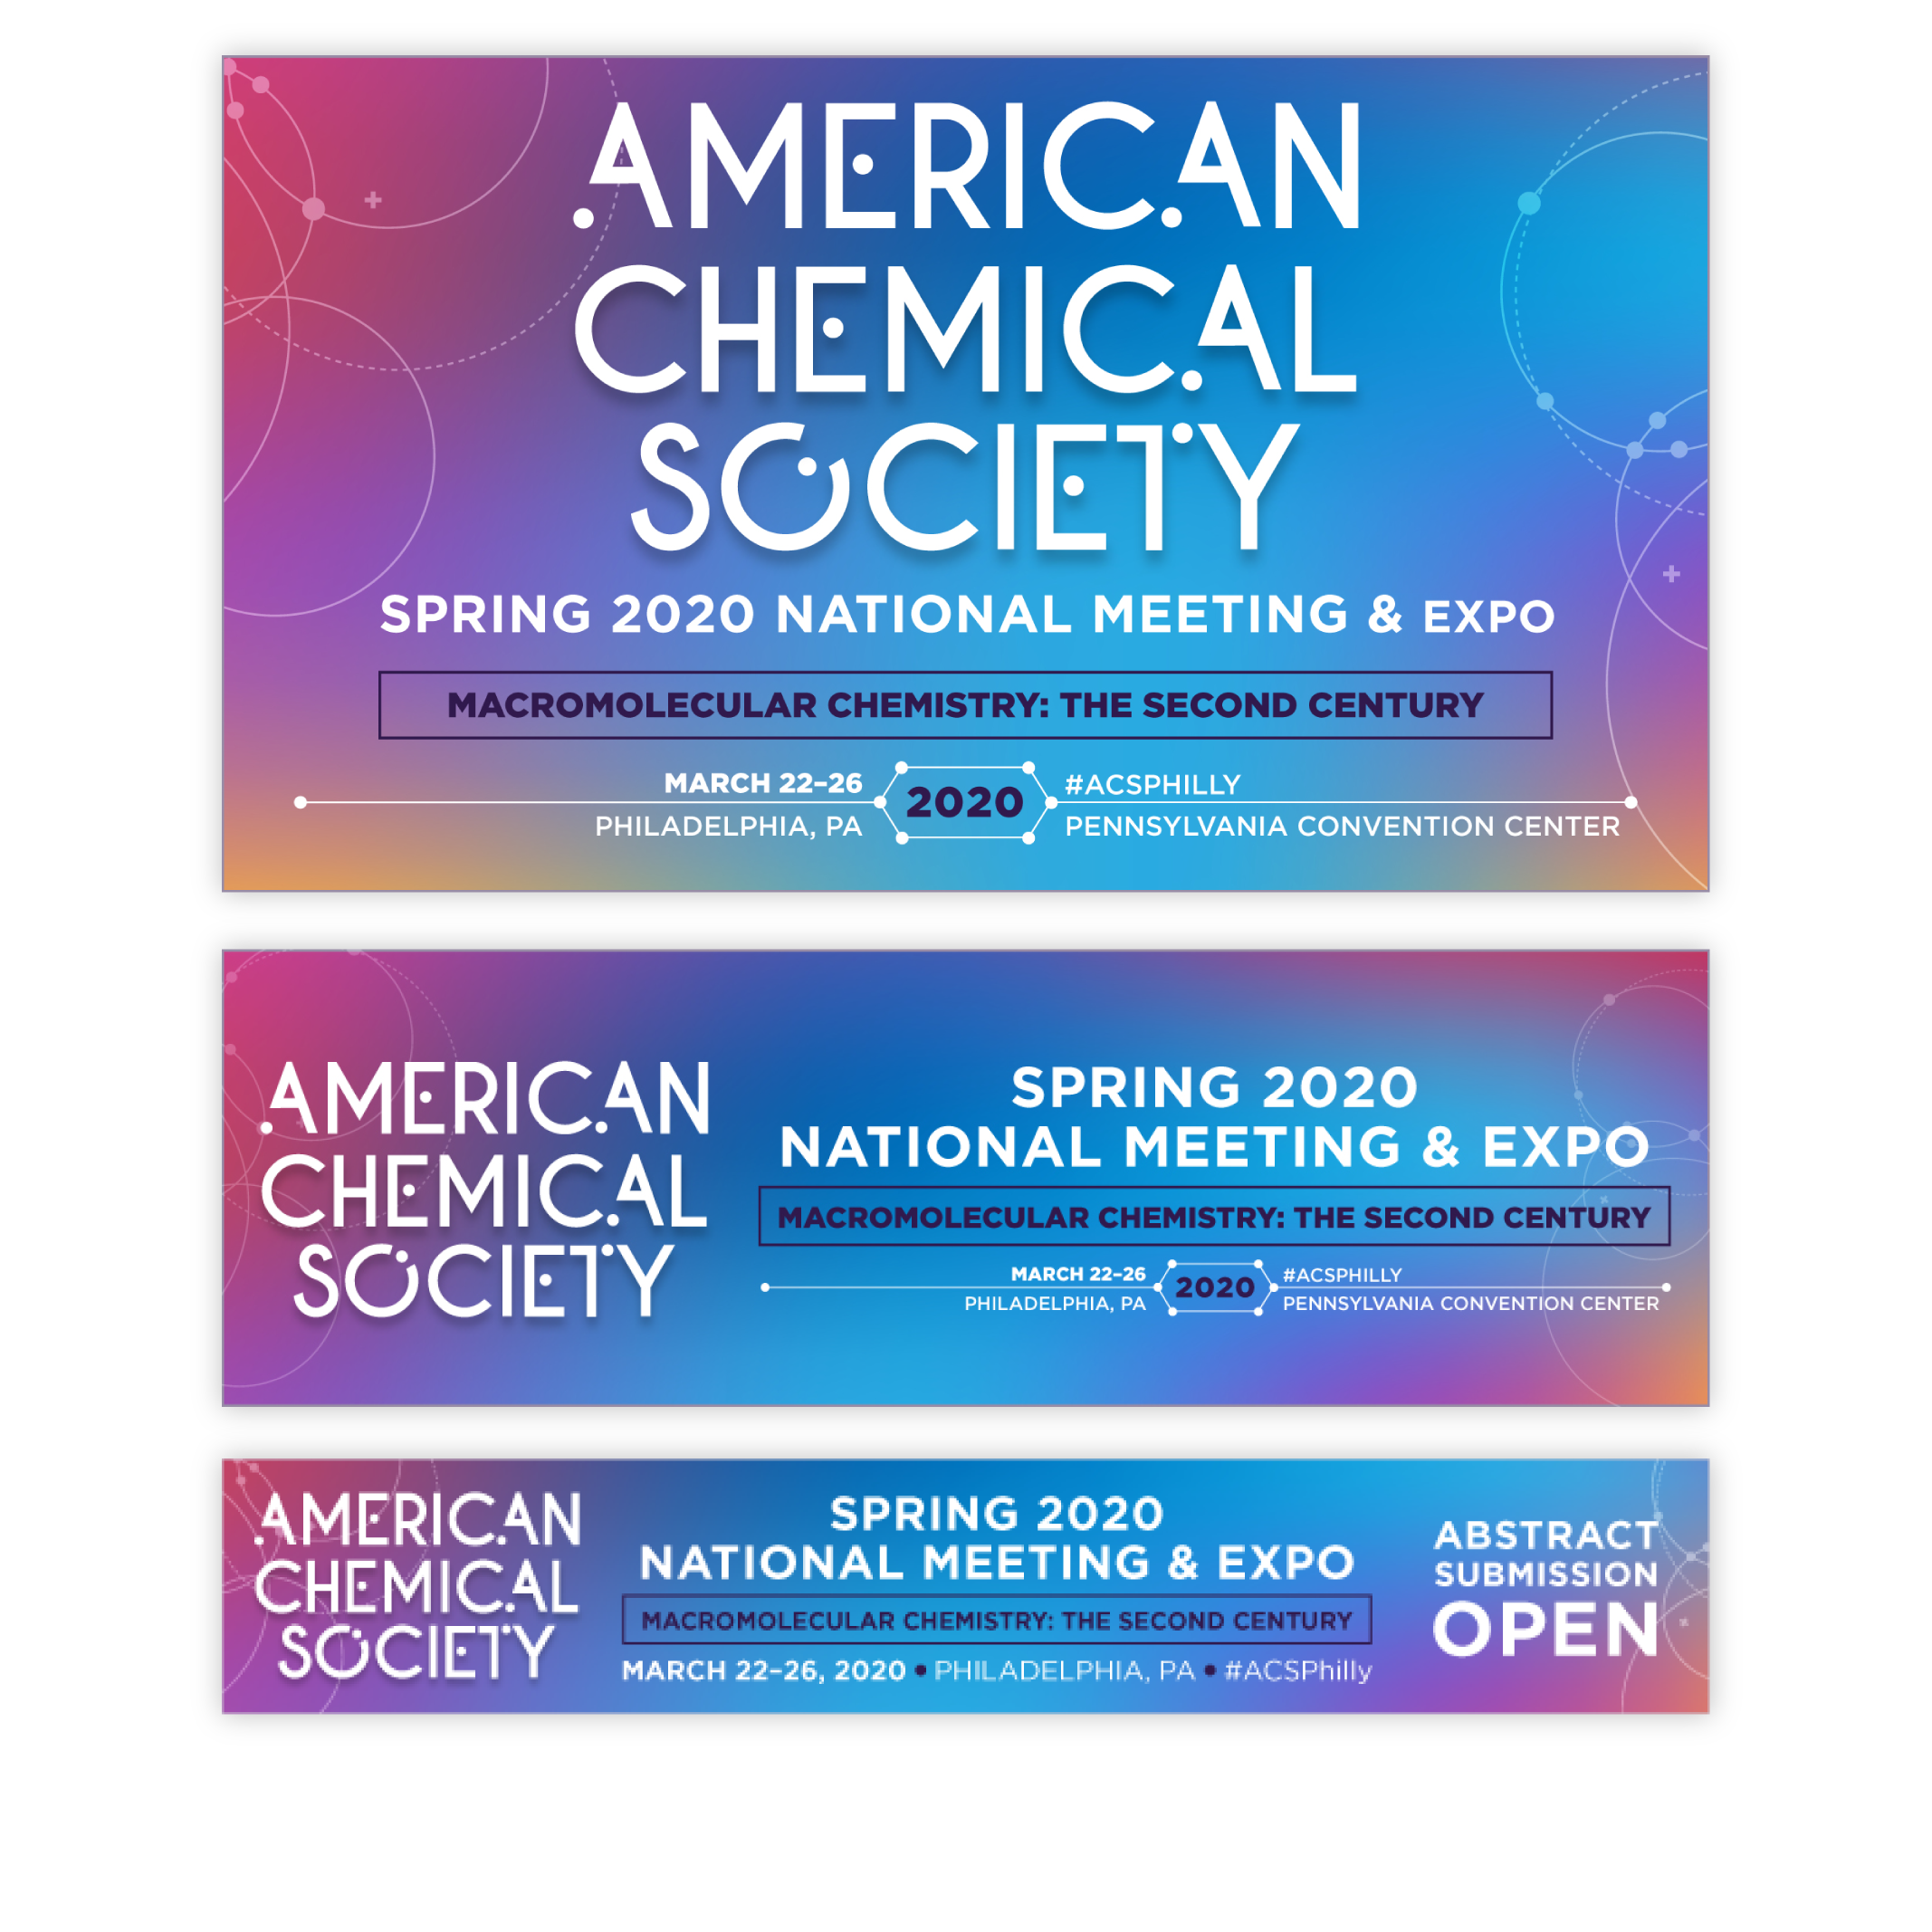 Onsite electronic signage included a teaser for the upcoming Spring 2020 National Meeting & Expo.